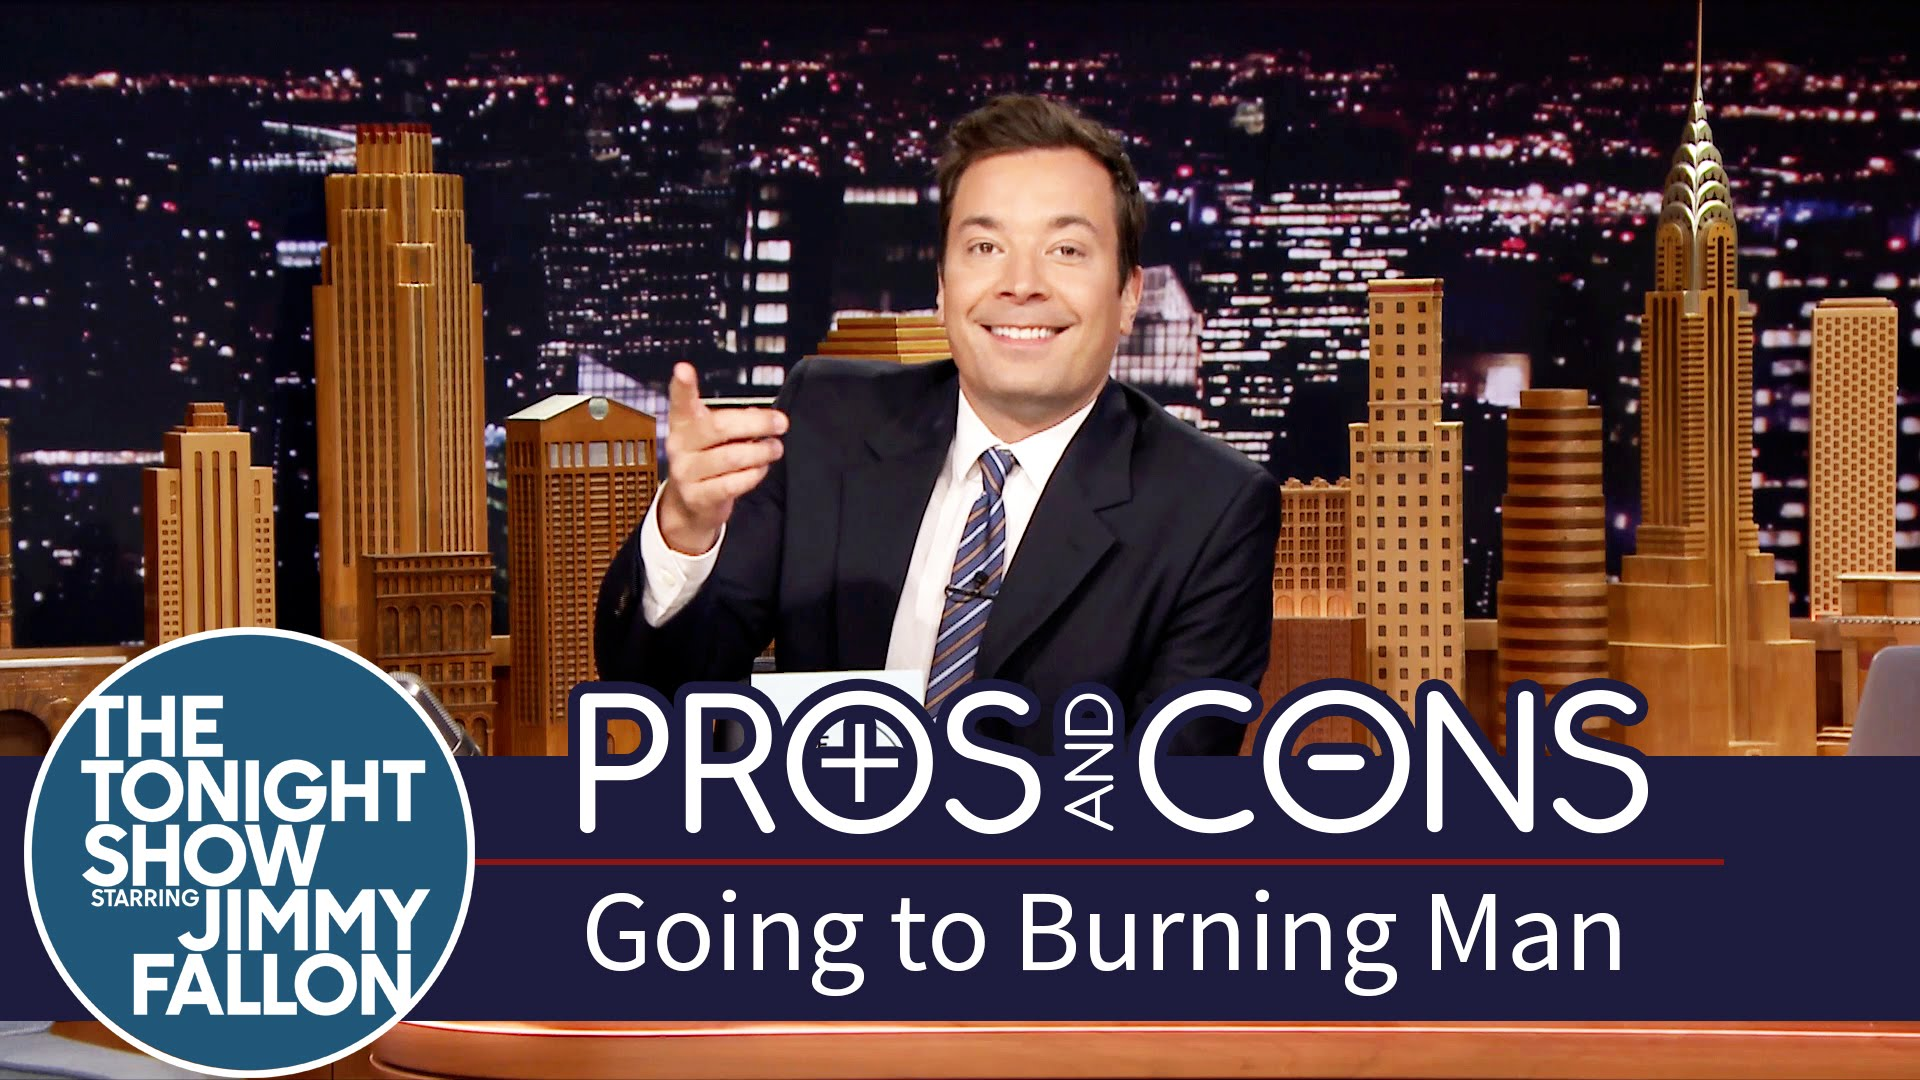 Watch Late Night with Jimmy Fallon Season  - Pros and Cons: Going to Burning Man Online